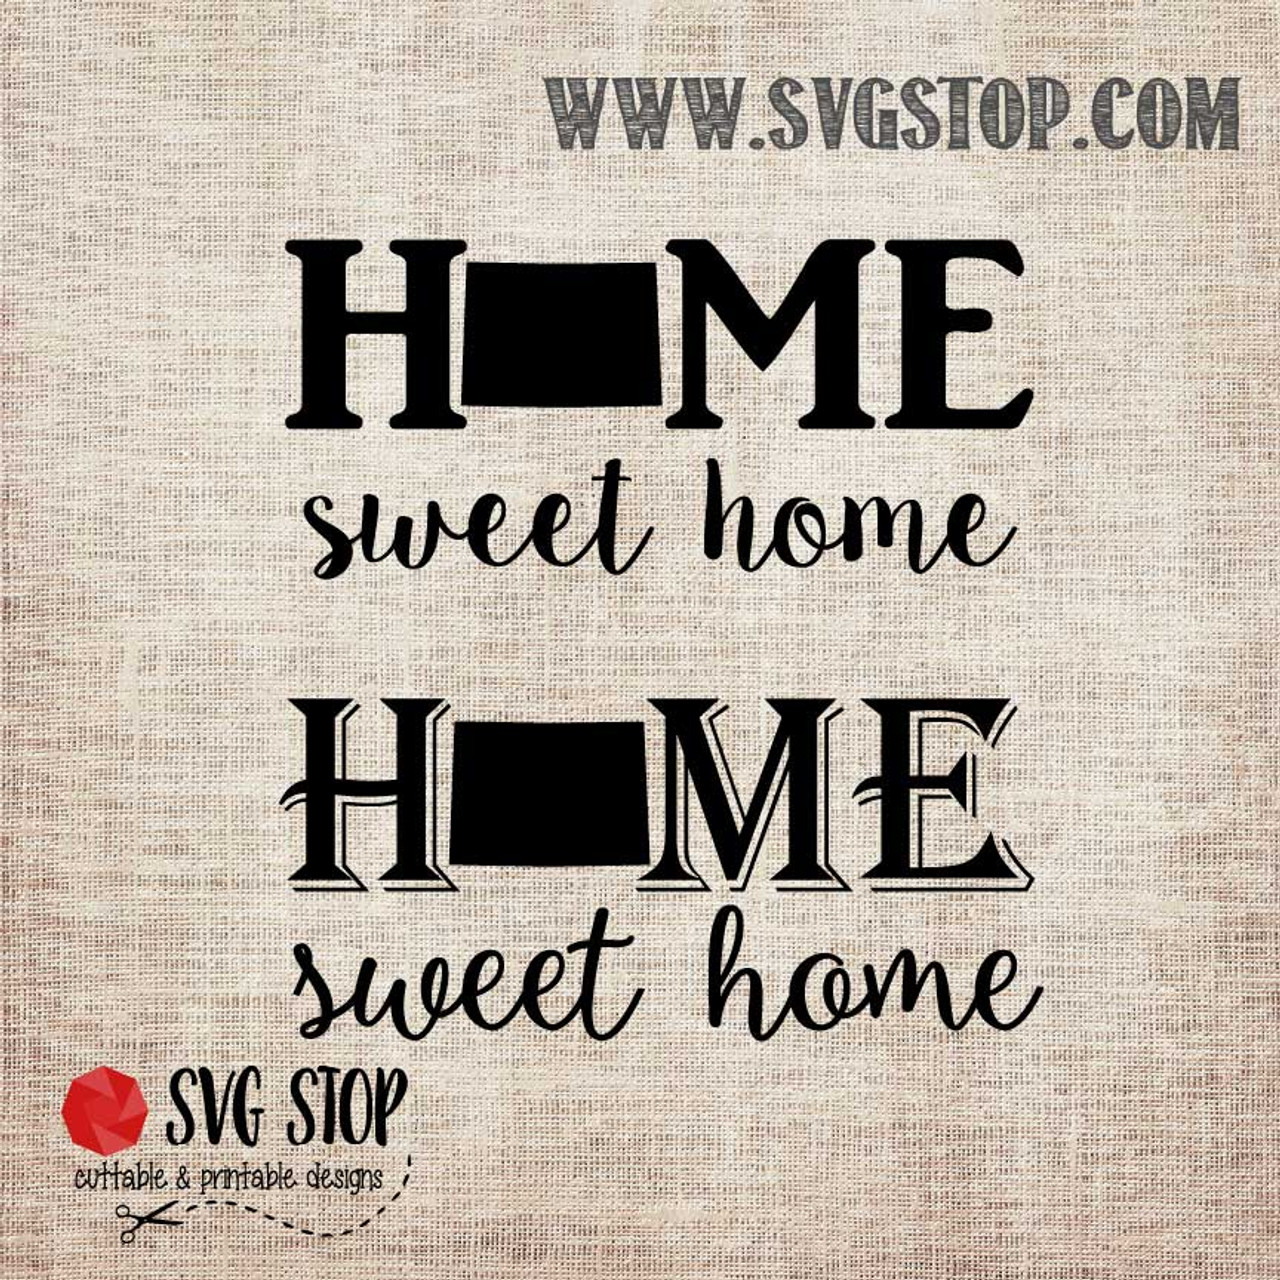 Colorado Home Sweet Home Cut File The Svg Stop